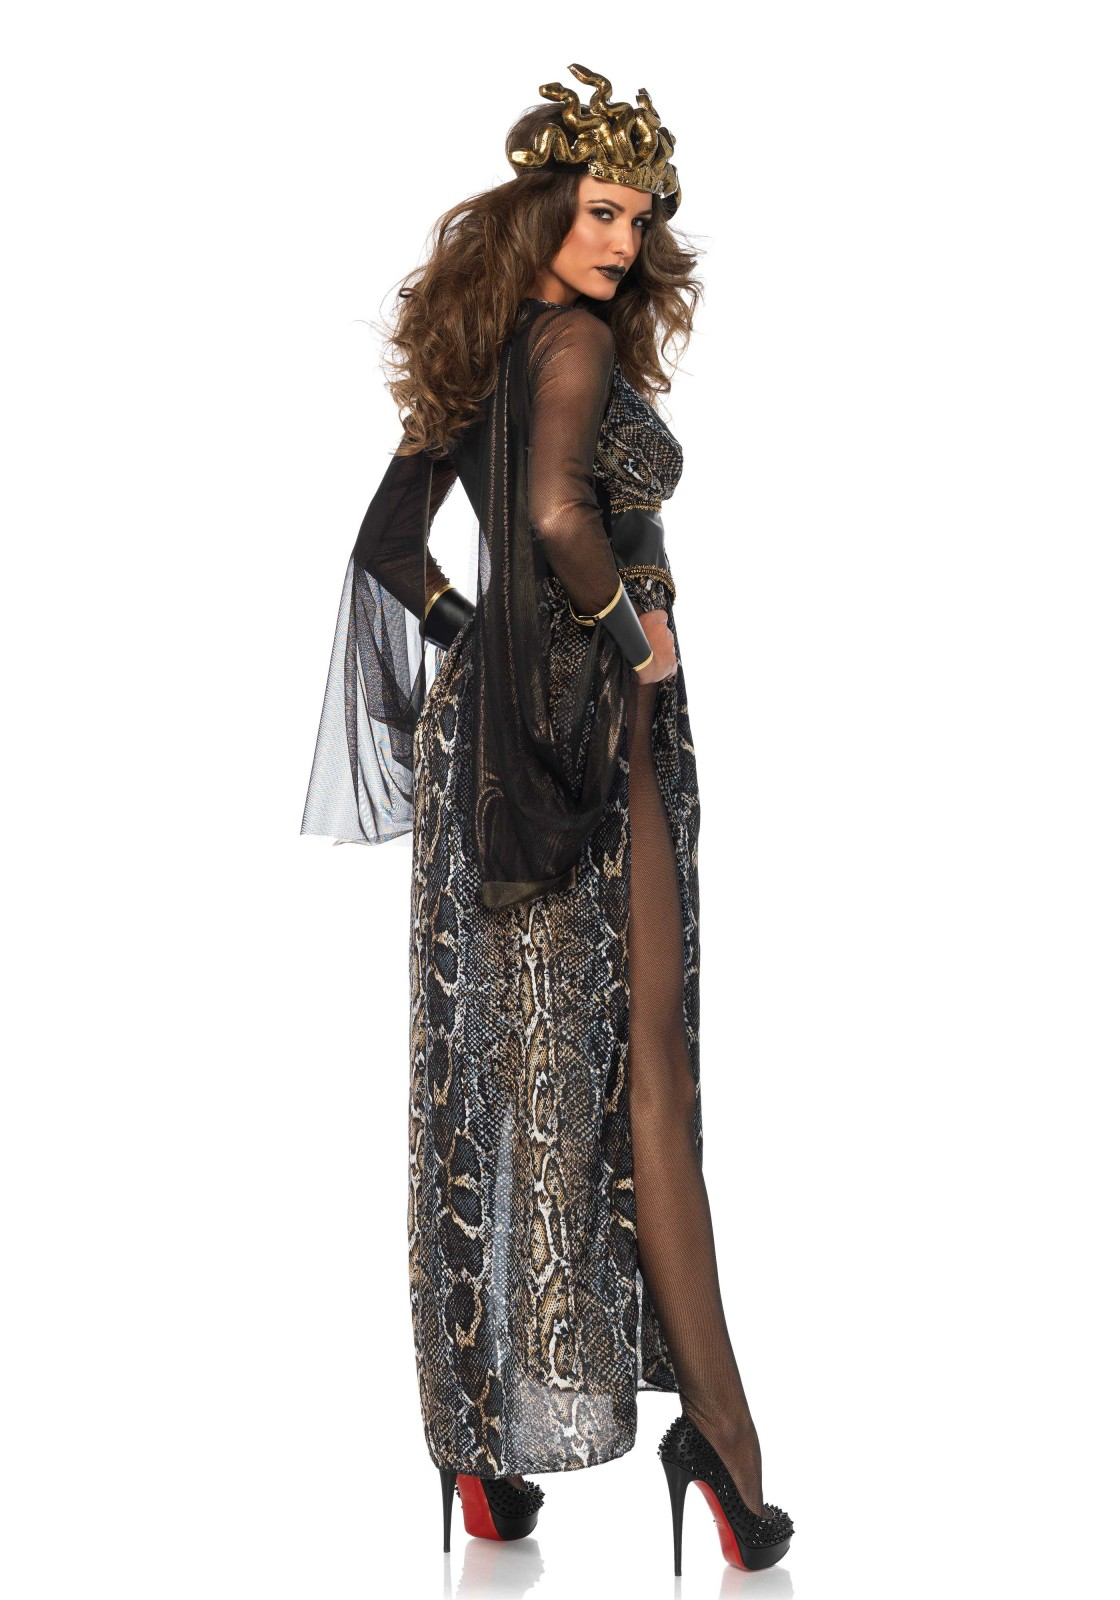 3 PC. Medusa, includes gold shimmer catsuit with attached cuffs, side slit snake print dress and snake head piece.